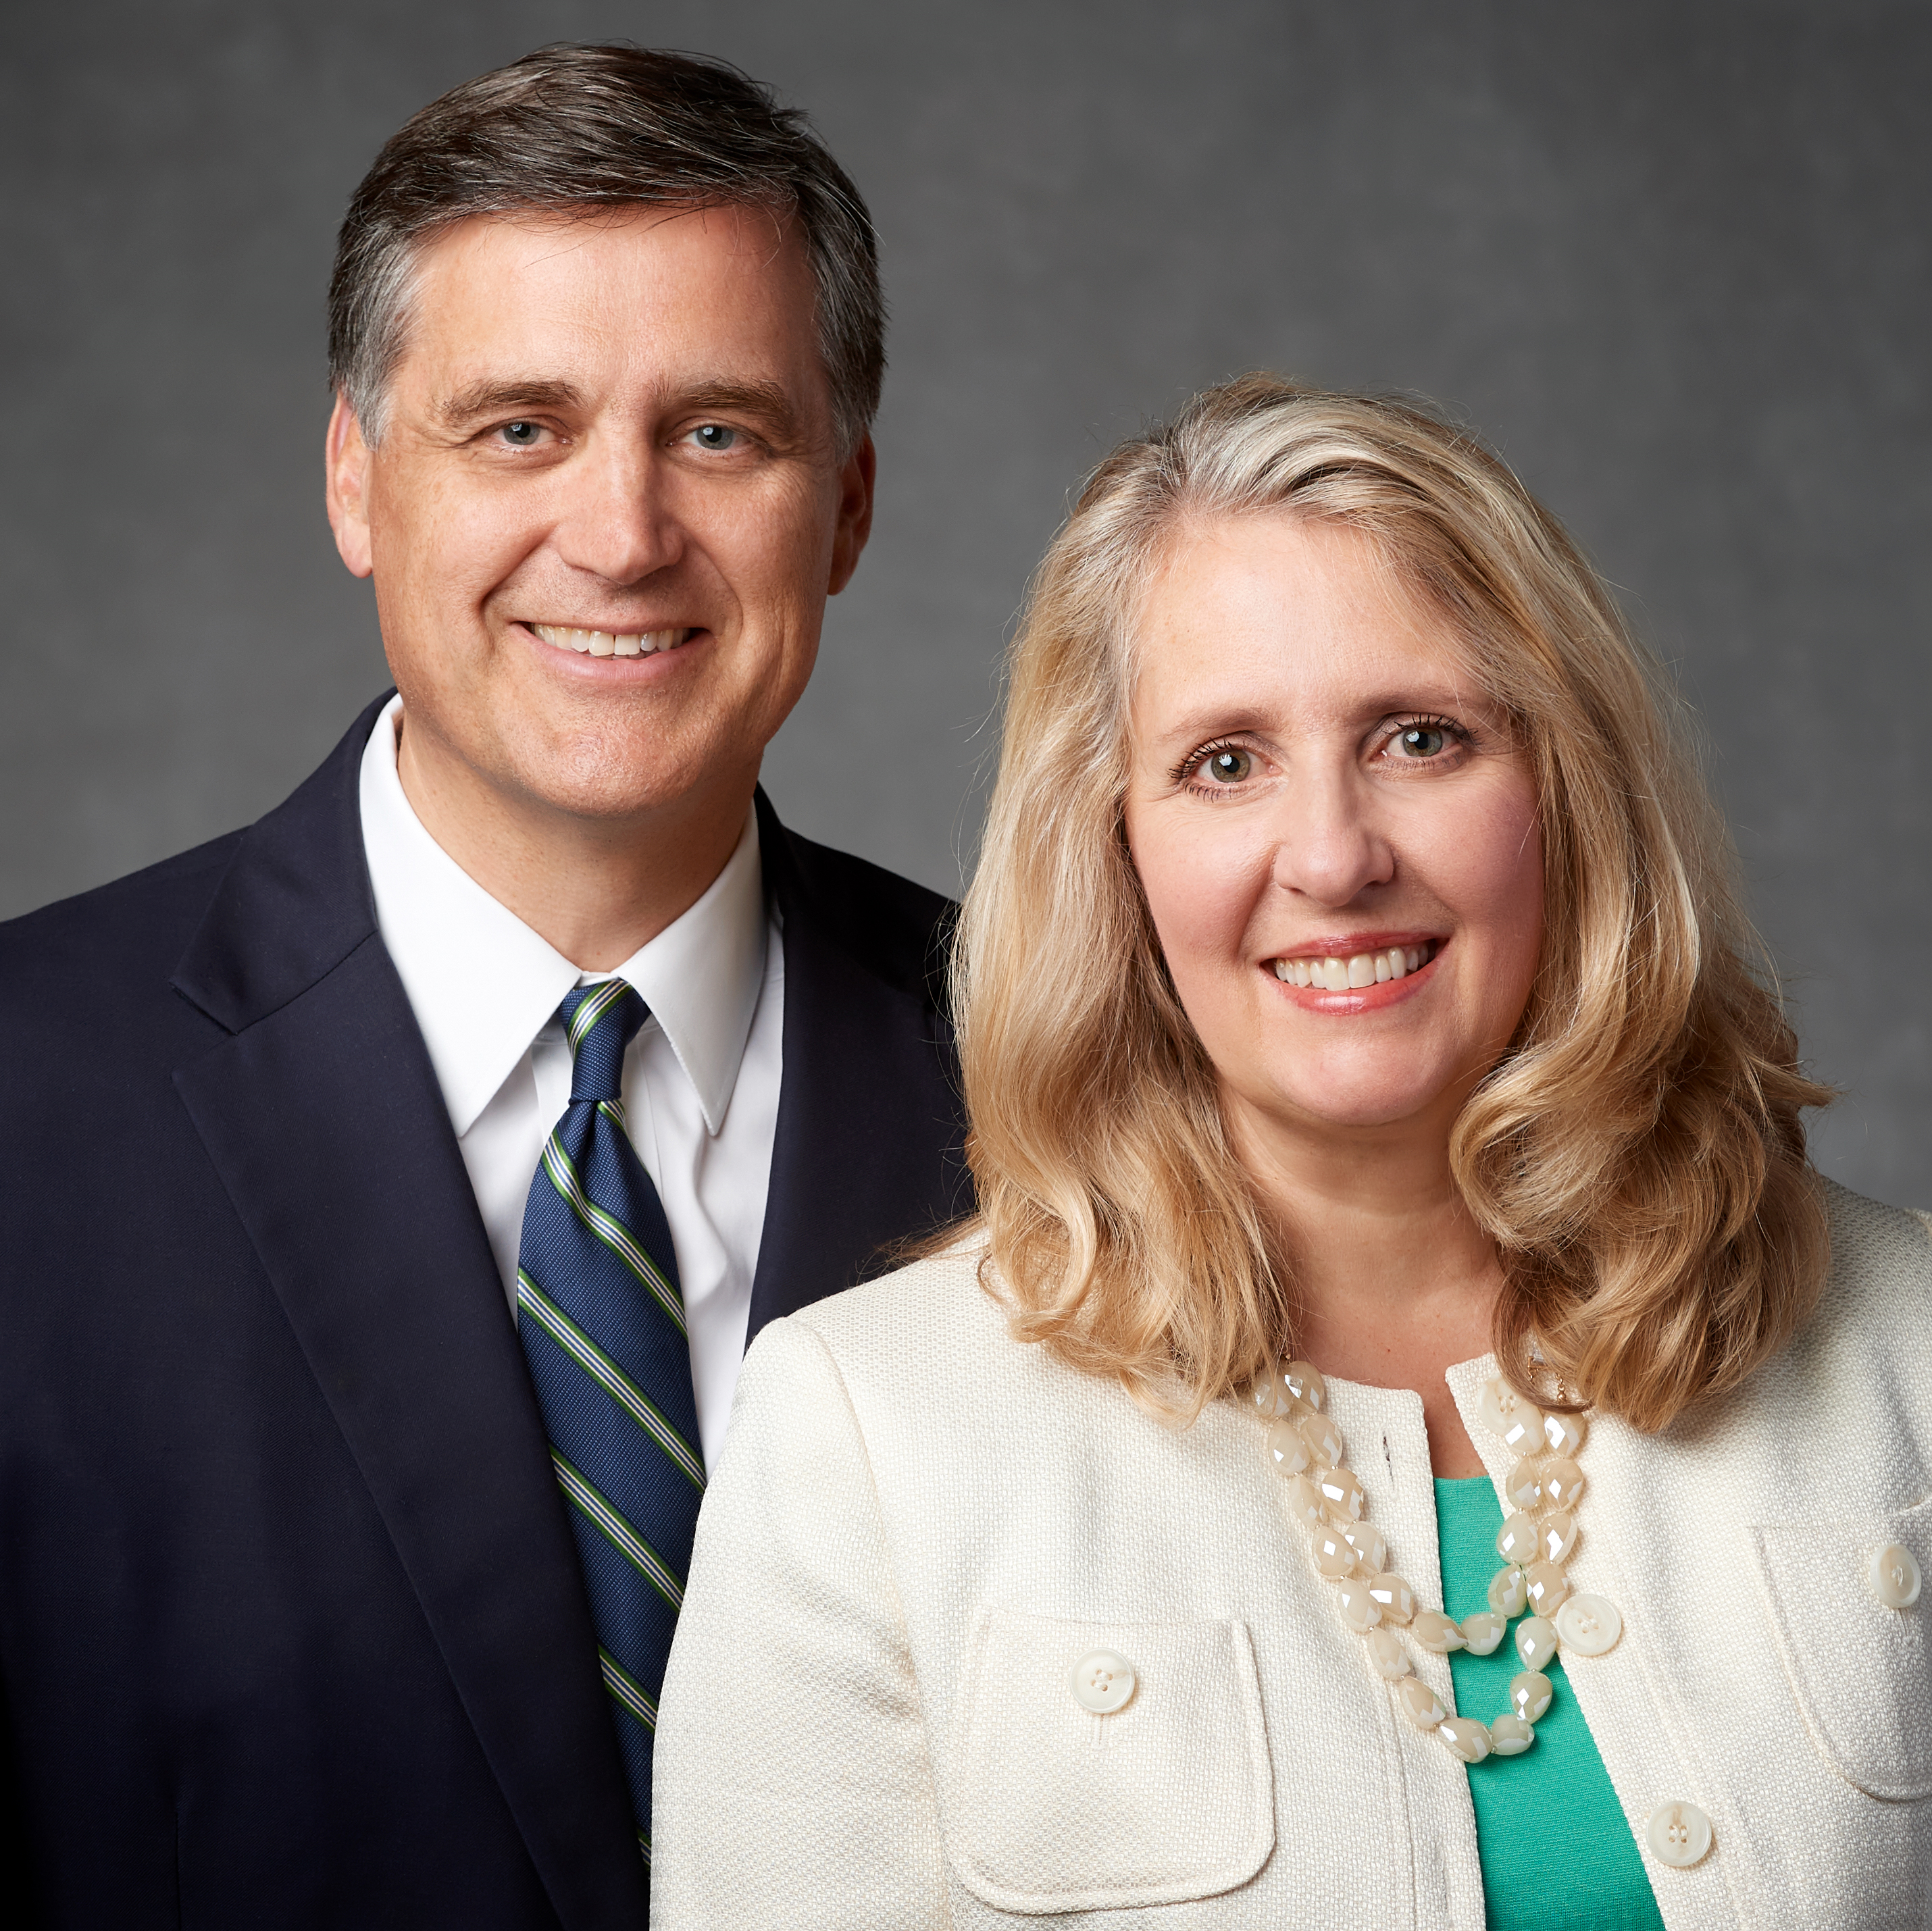 Michael L. and Shelley Peterson